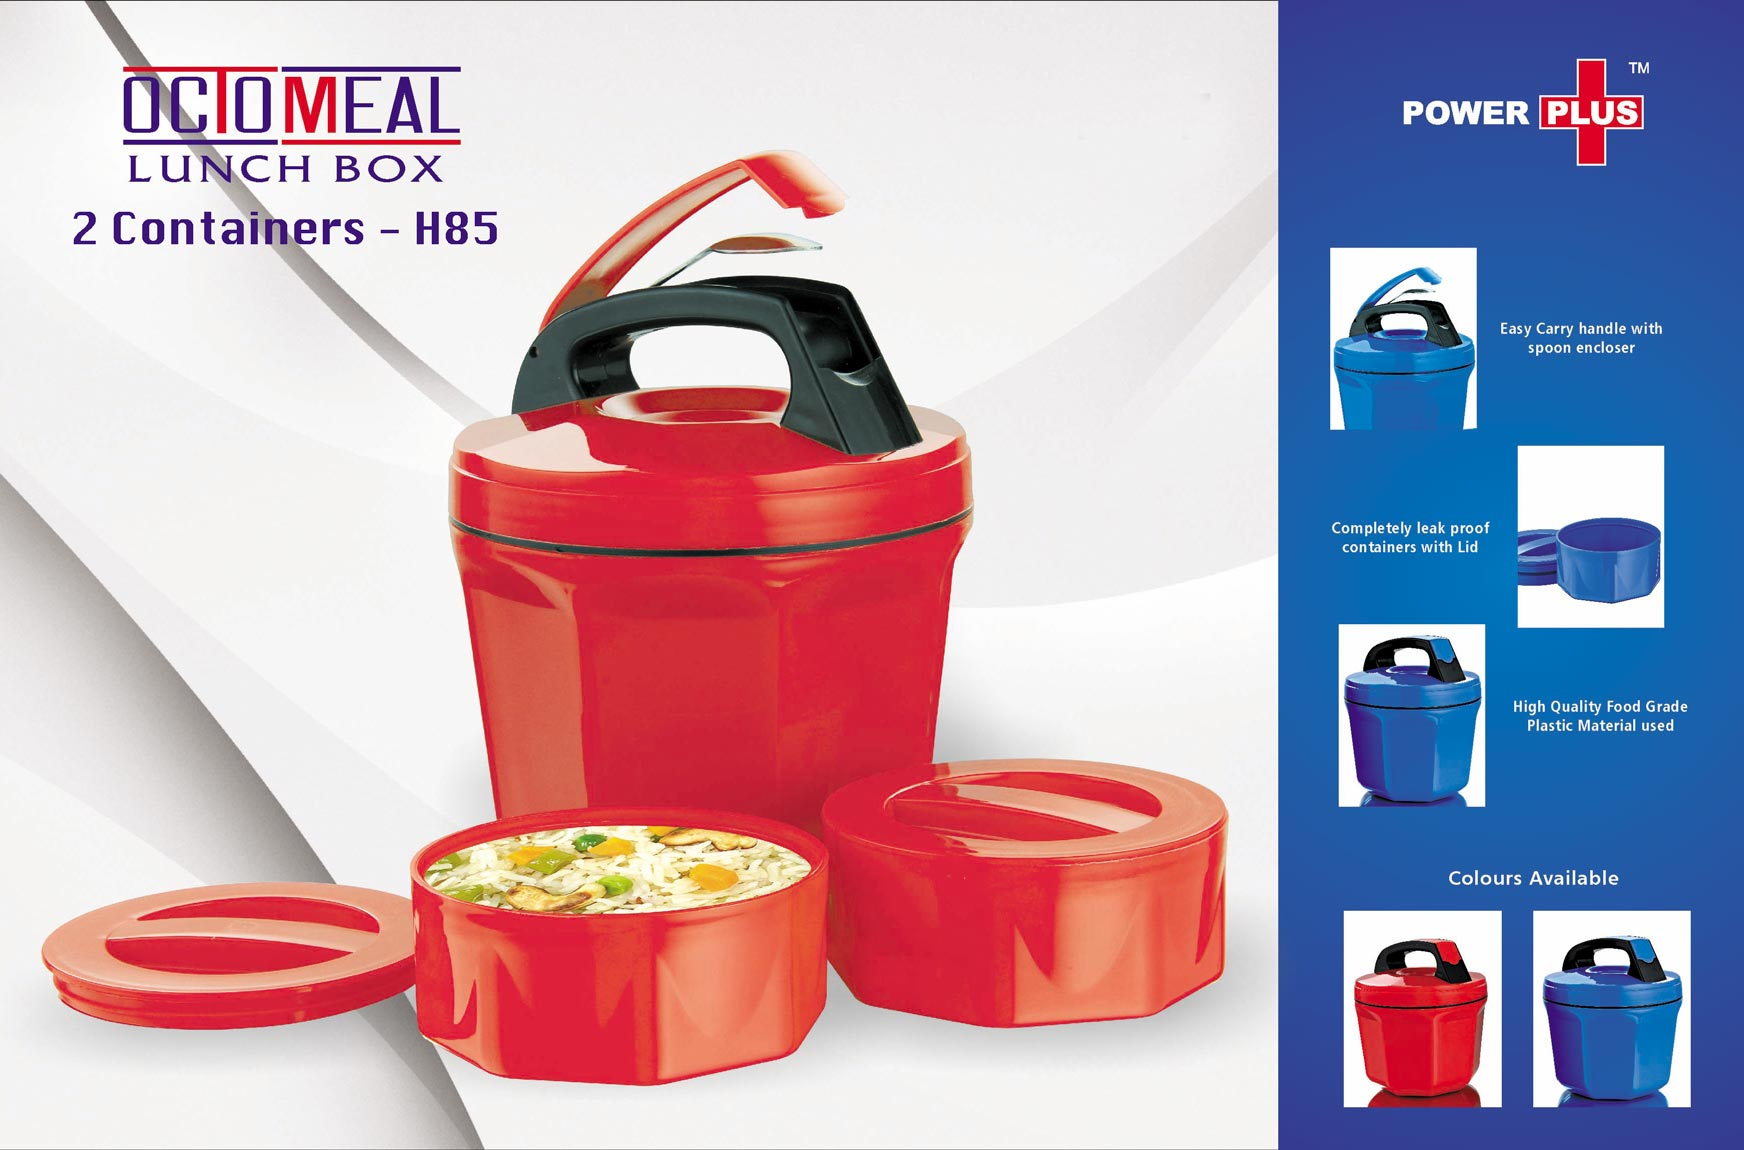 H85 - Power Plus Octomeal Lunch box - 2 containers (plastic)